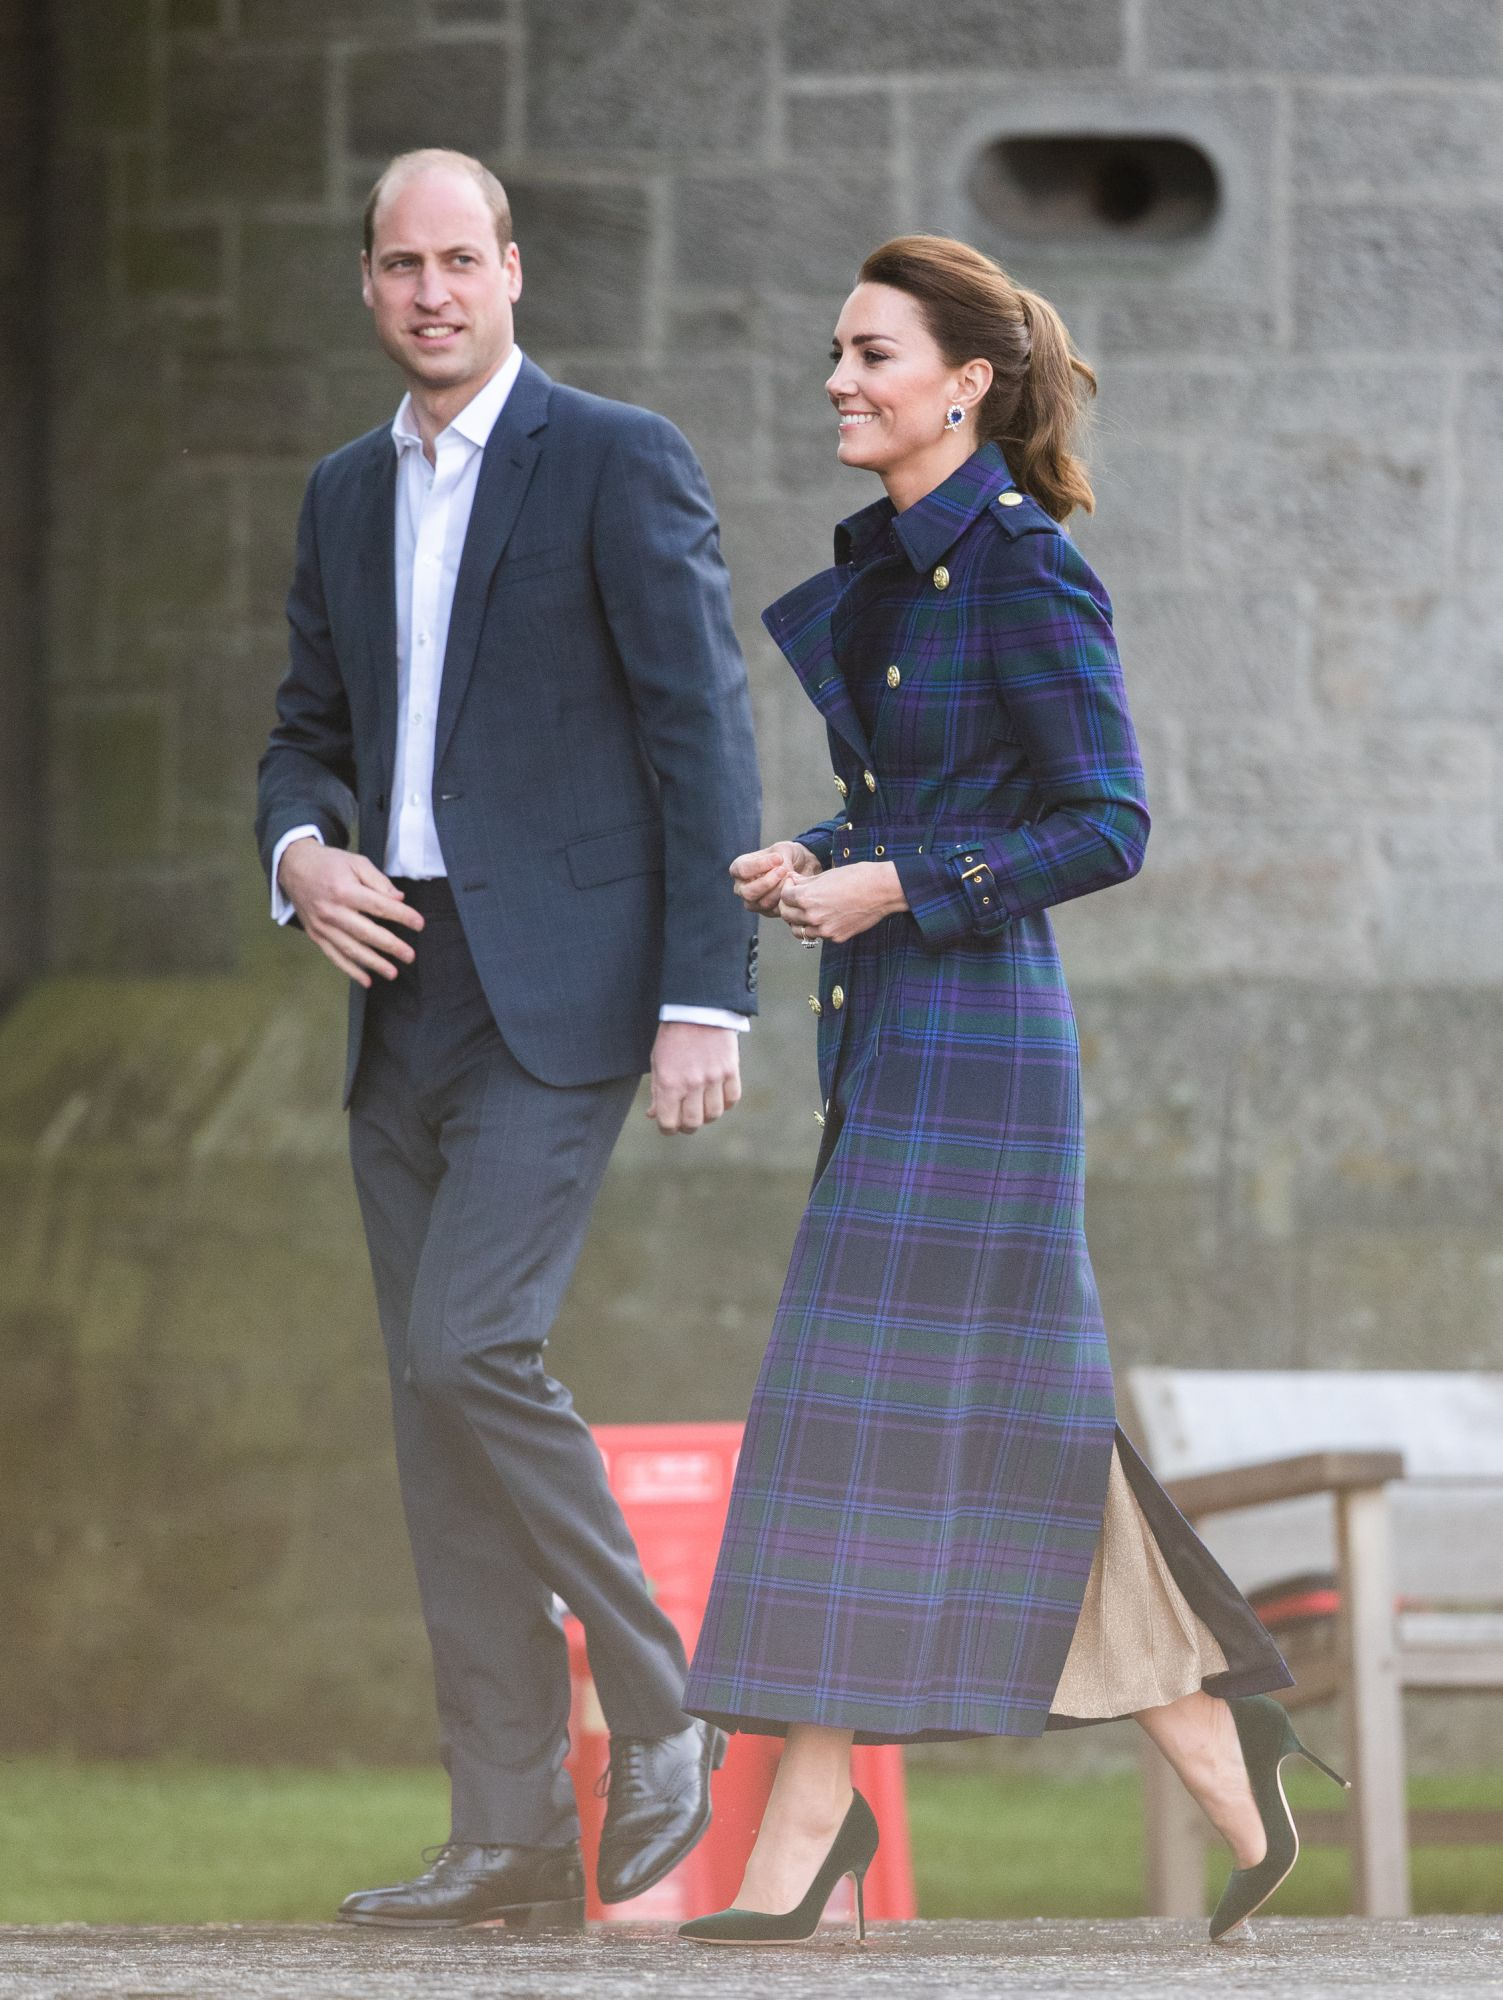 EDINBURH, SCOTLAND - MAY 26: Prince William, Duke of Cambridge and Catherine, Duchess of Cambridge host NHS Charities Together and NHS staff at a unique drive-in cinema to watch a special screening of Disney's Cruella at the Palace of Holyroodhouse on day six of their week-long visit to Scotland on May 26, 2021 in Edinburgh, Scotland. (Photo by Pool/Samir Hussein/WireImage)